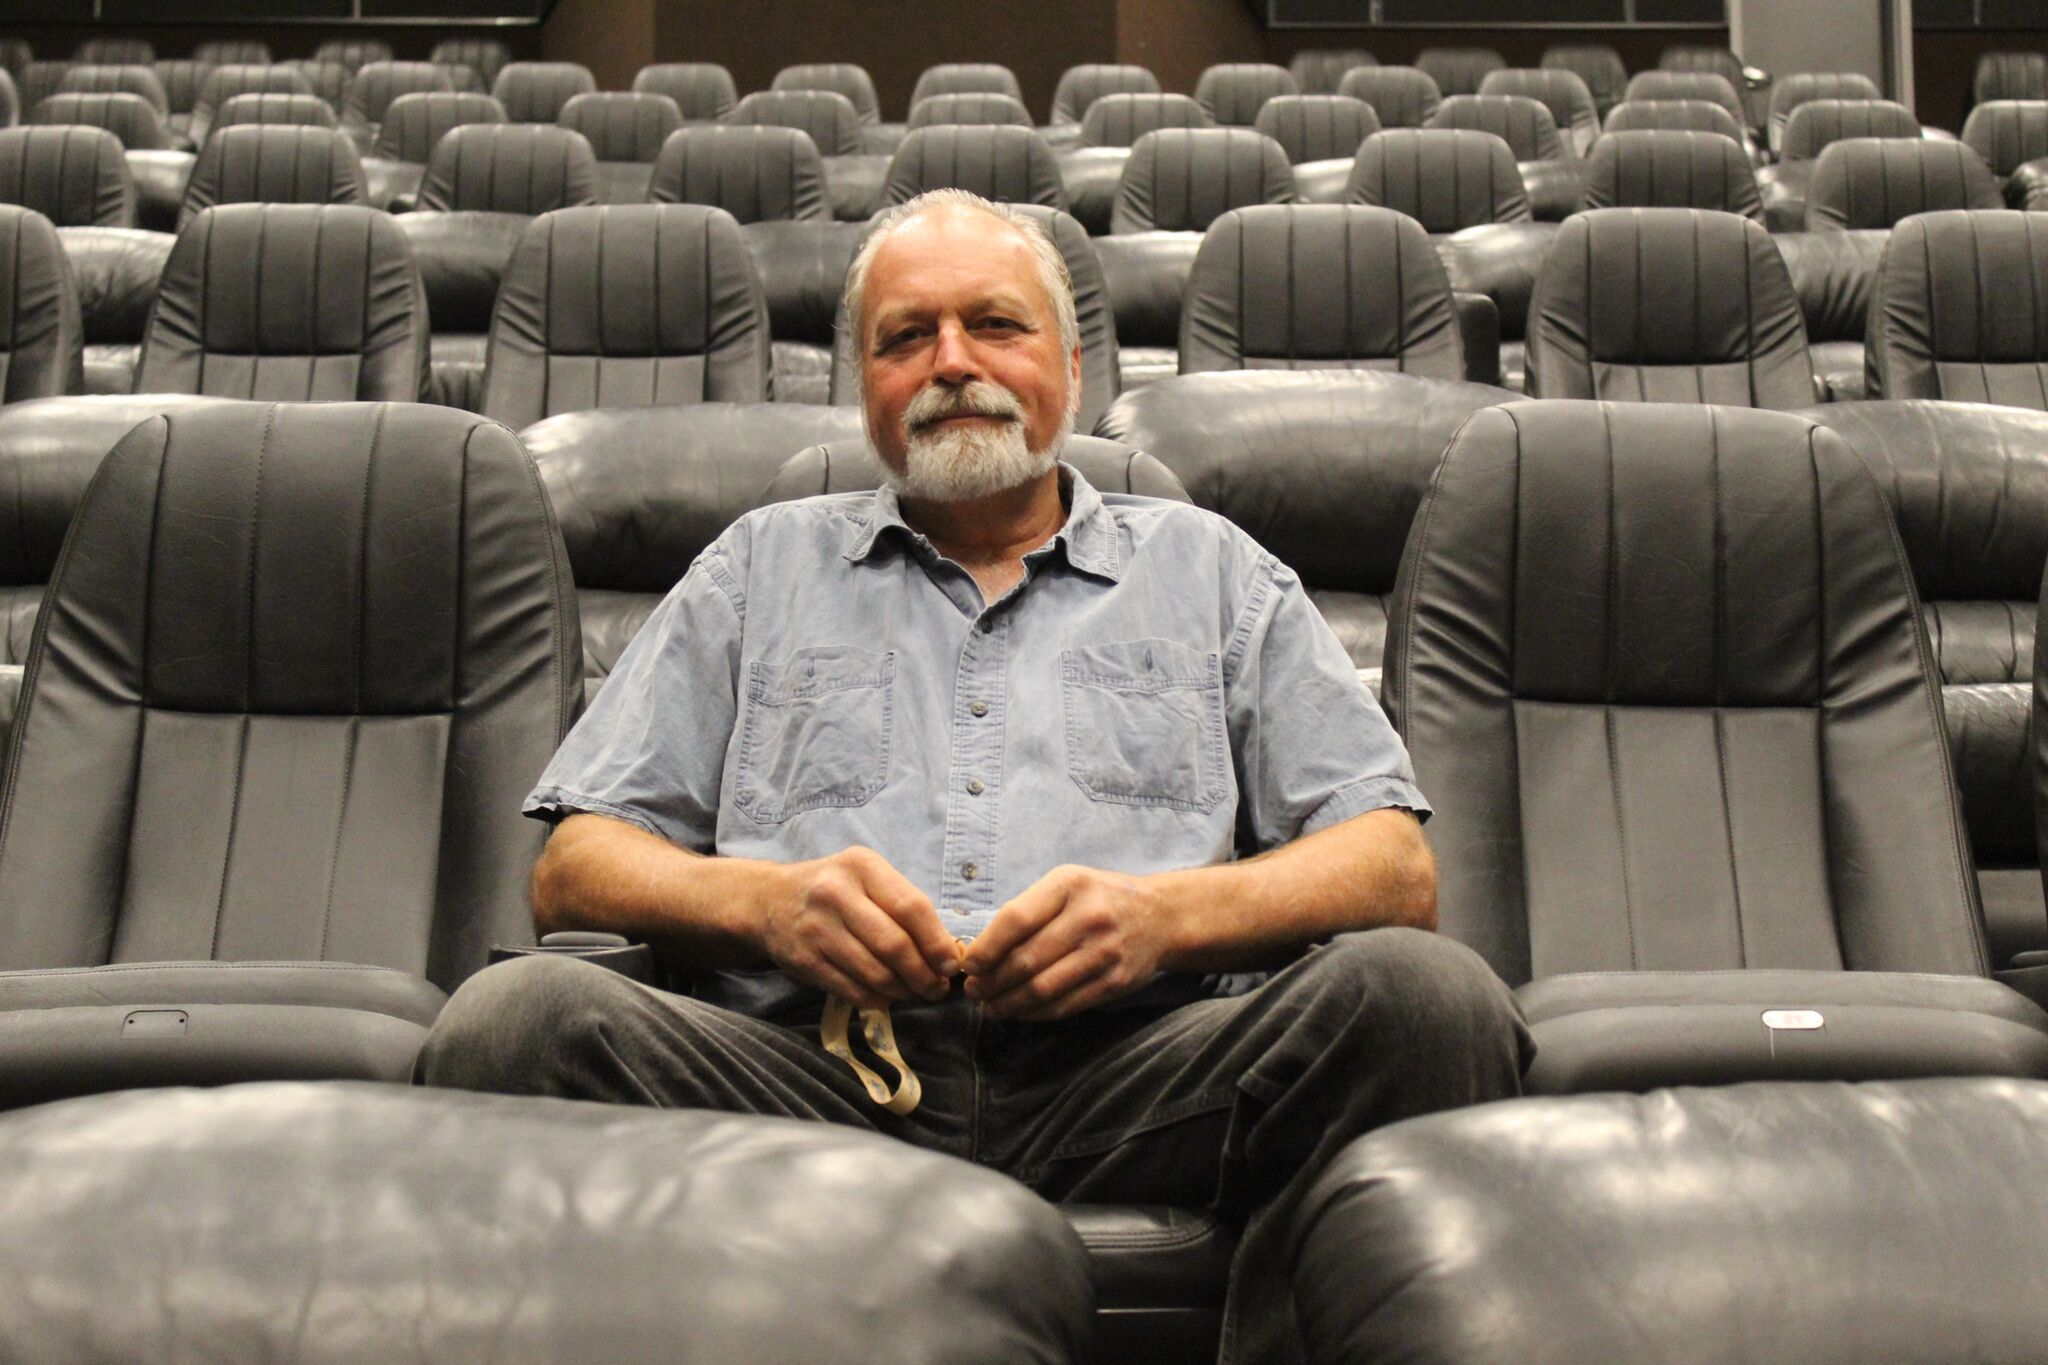 Keystone Cinema owner Pete Schellenberg has had a difficult past few months as theatre restrictions remain in effect. Schellenberg said he expects movie theatres will make a comeback once restrictions lift because people want to get of out of their houses, and because movie production companies will want live audiences despite streaming services.